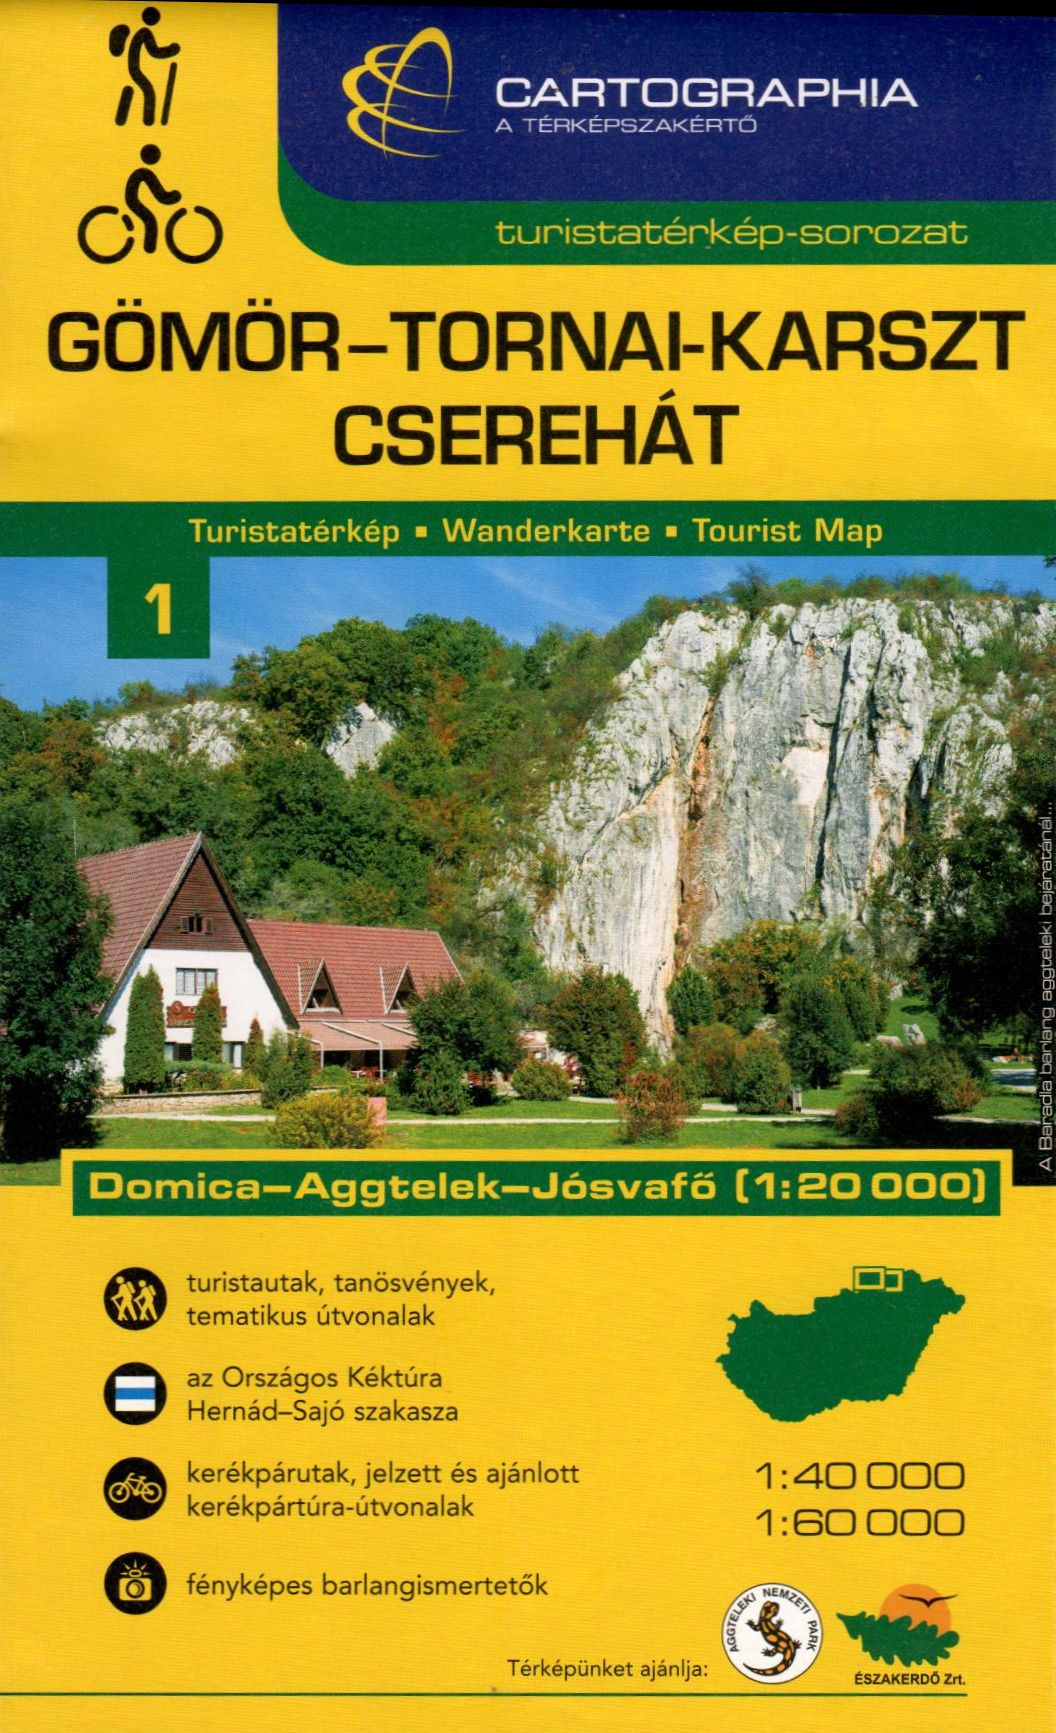 Aggtelek (Gömör-Torna) mountains and environs tourist and biking map with detailed scheme of the World heritage Aggtelek cave. Inset map of the Cserehát mountains.